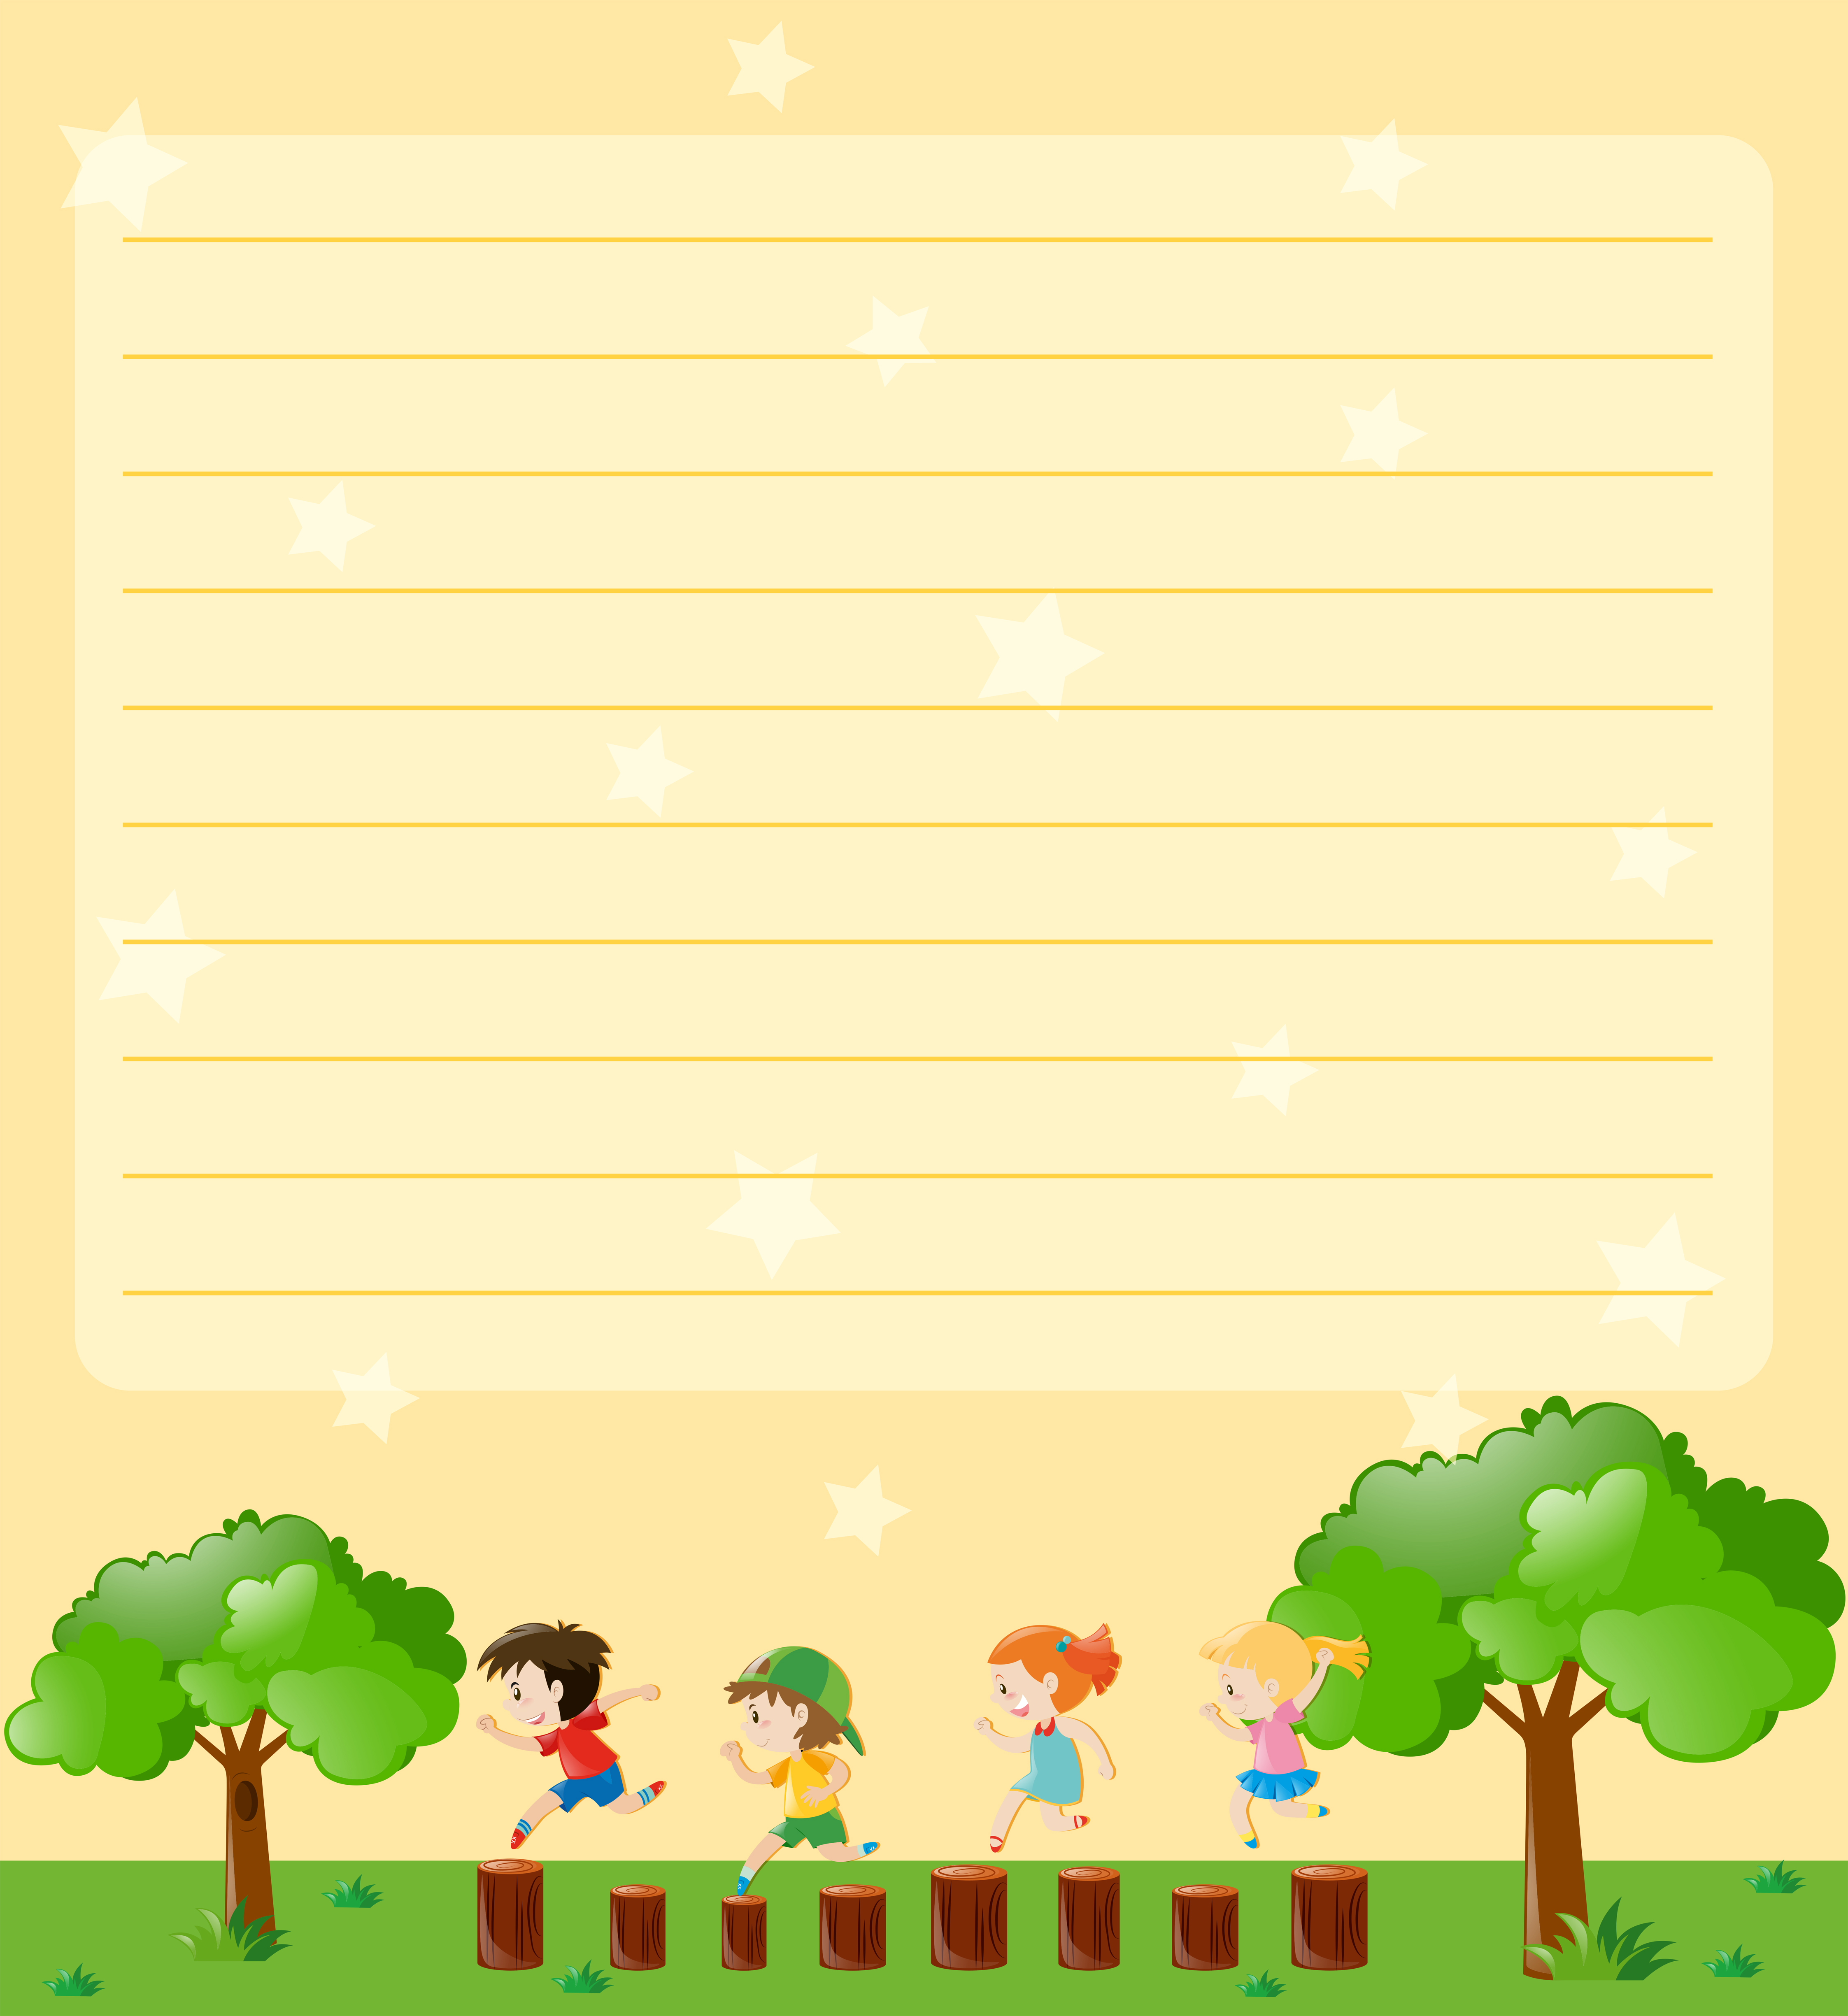 Line Paper Template With Kids Playing In Park